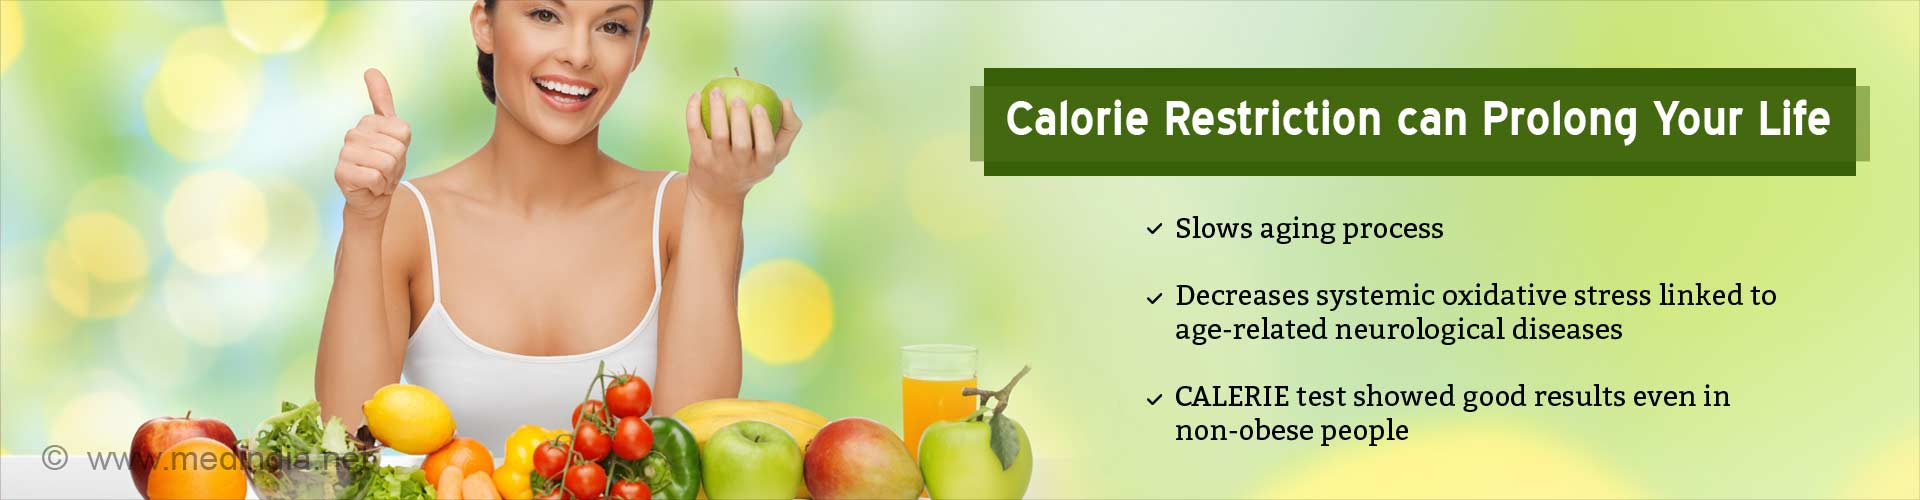 Calorie Restriction can Prevent Age-related Diseases